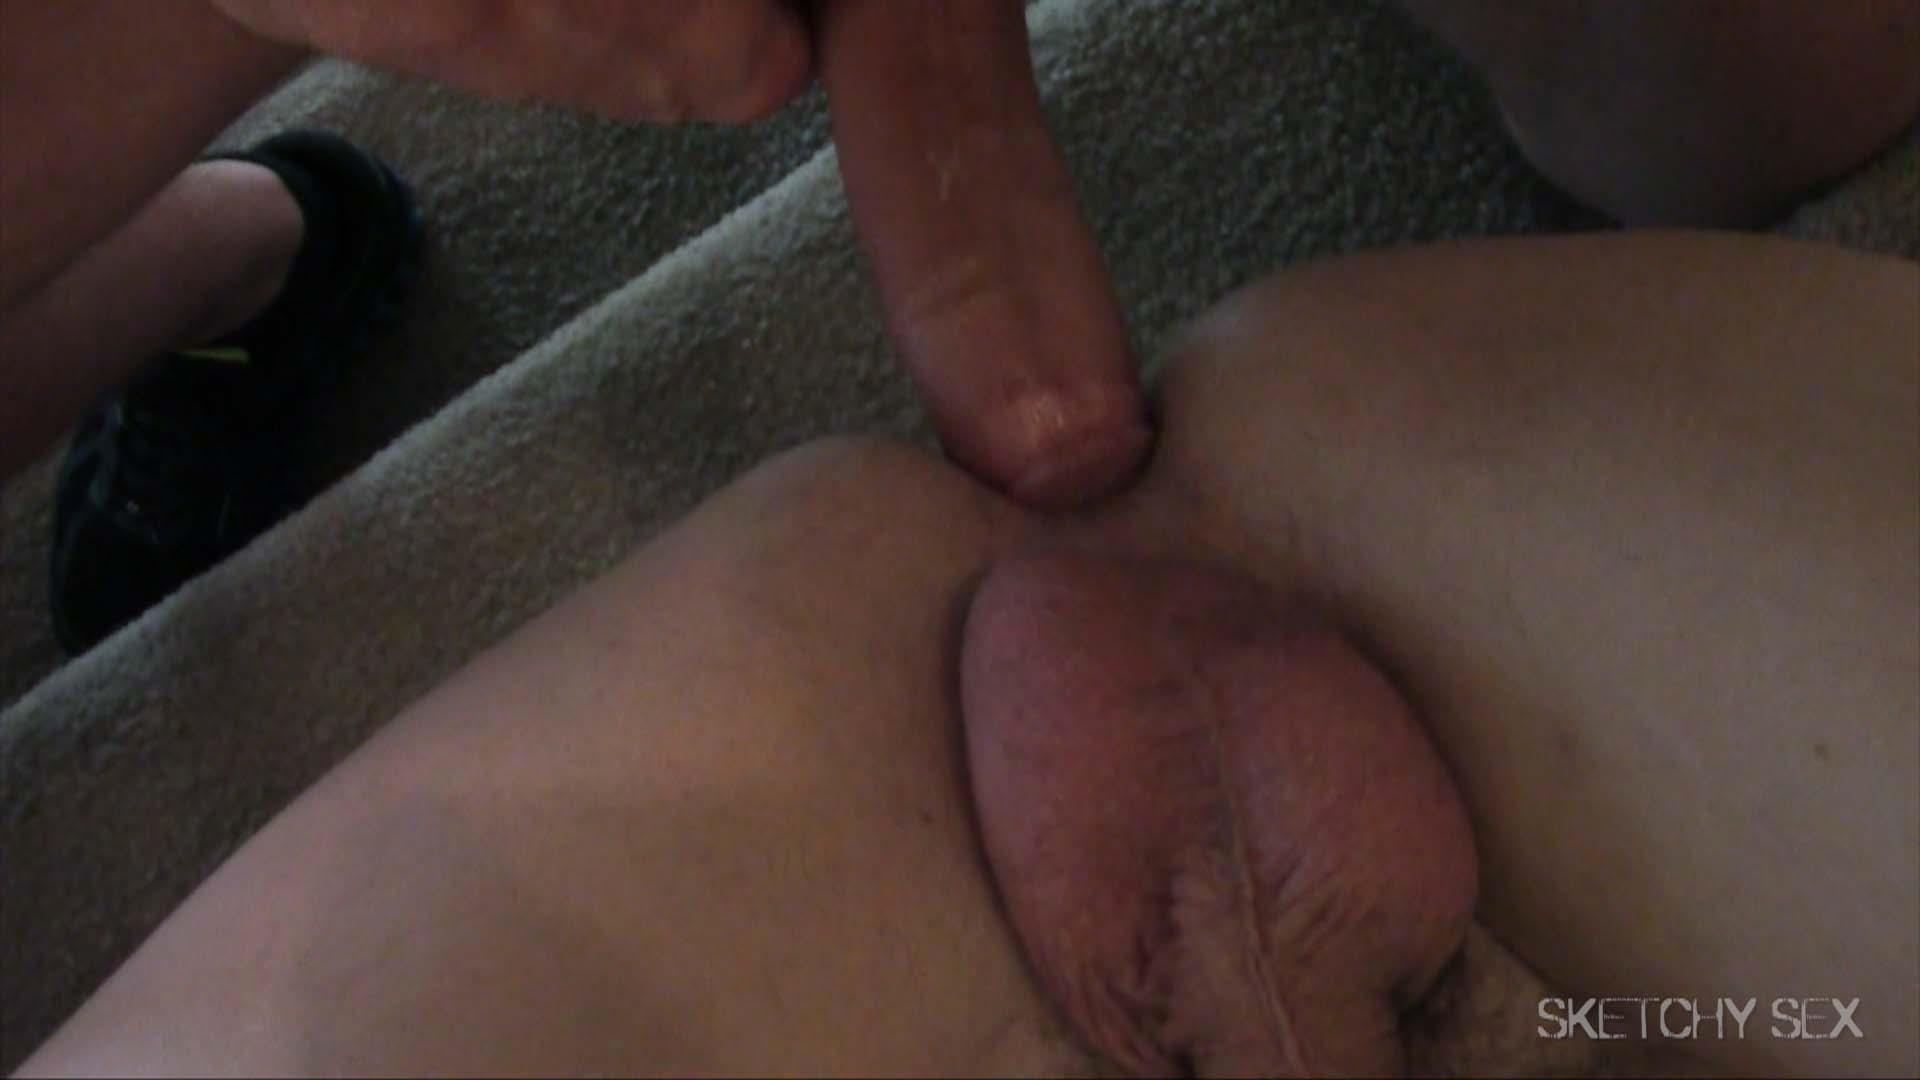 Sketchy Sex Bareback Breeding Anonymous Sex Amateur Gay Porn 07 Three Hung Guys Breeding A Slutty Jock Hole